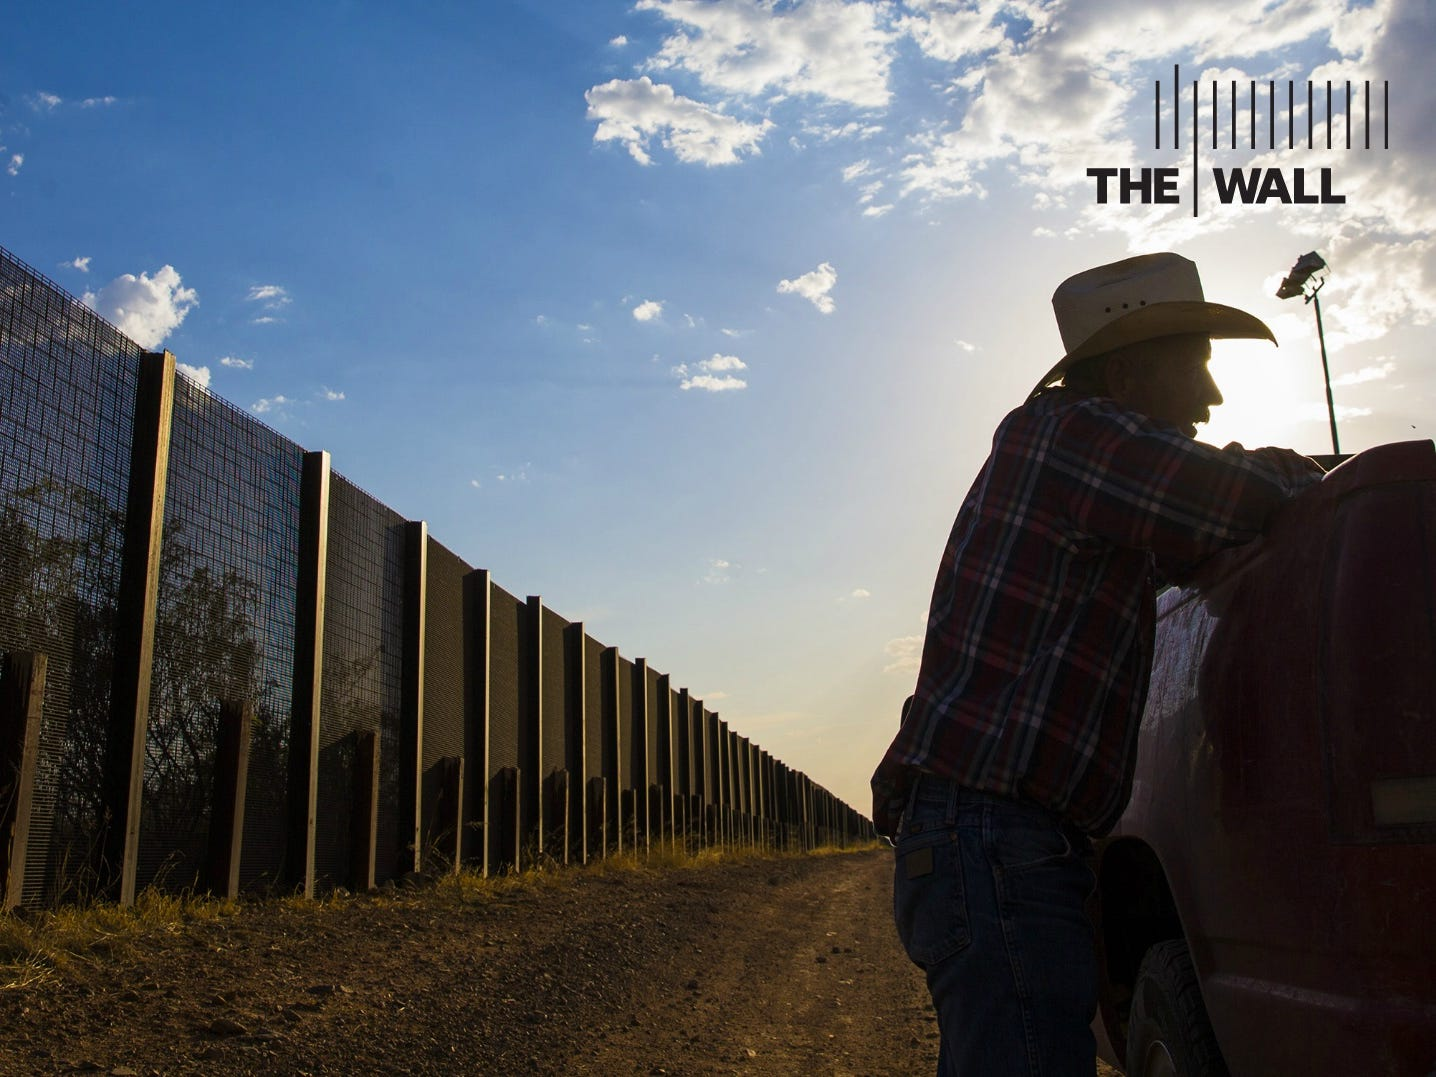 Join the El Paso Times and the USA TODAY NETWORK for The Wall, an examination of the U.S.-Mexico border.